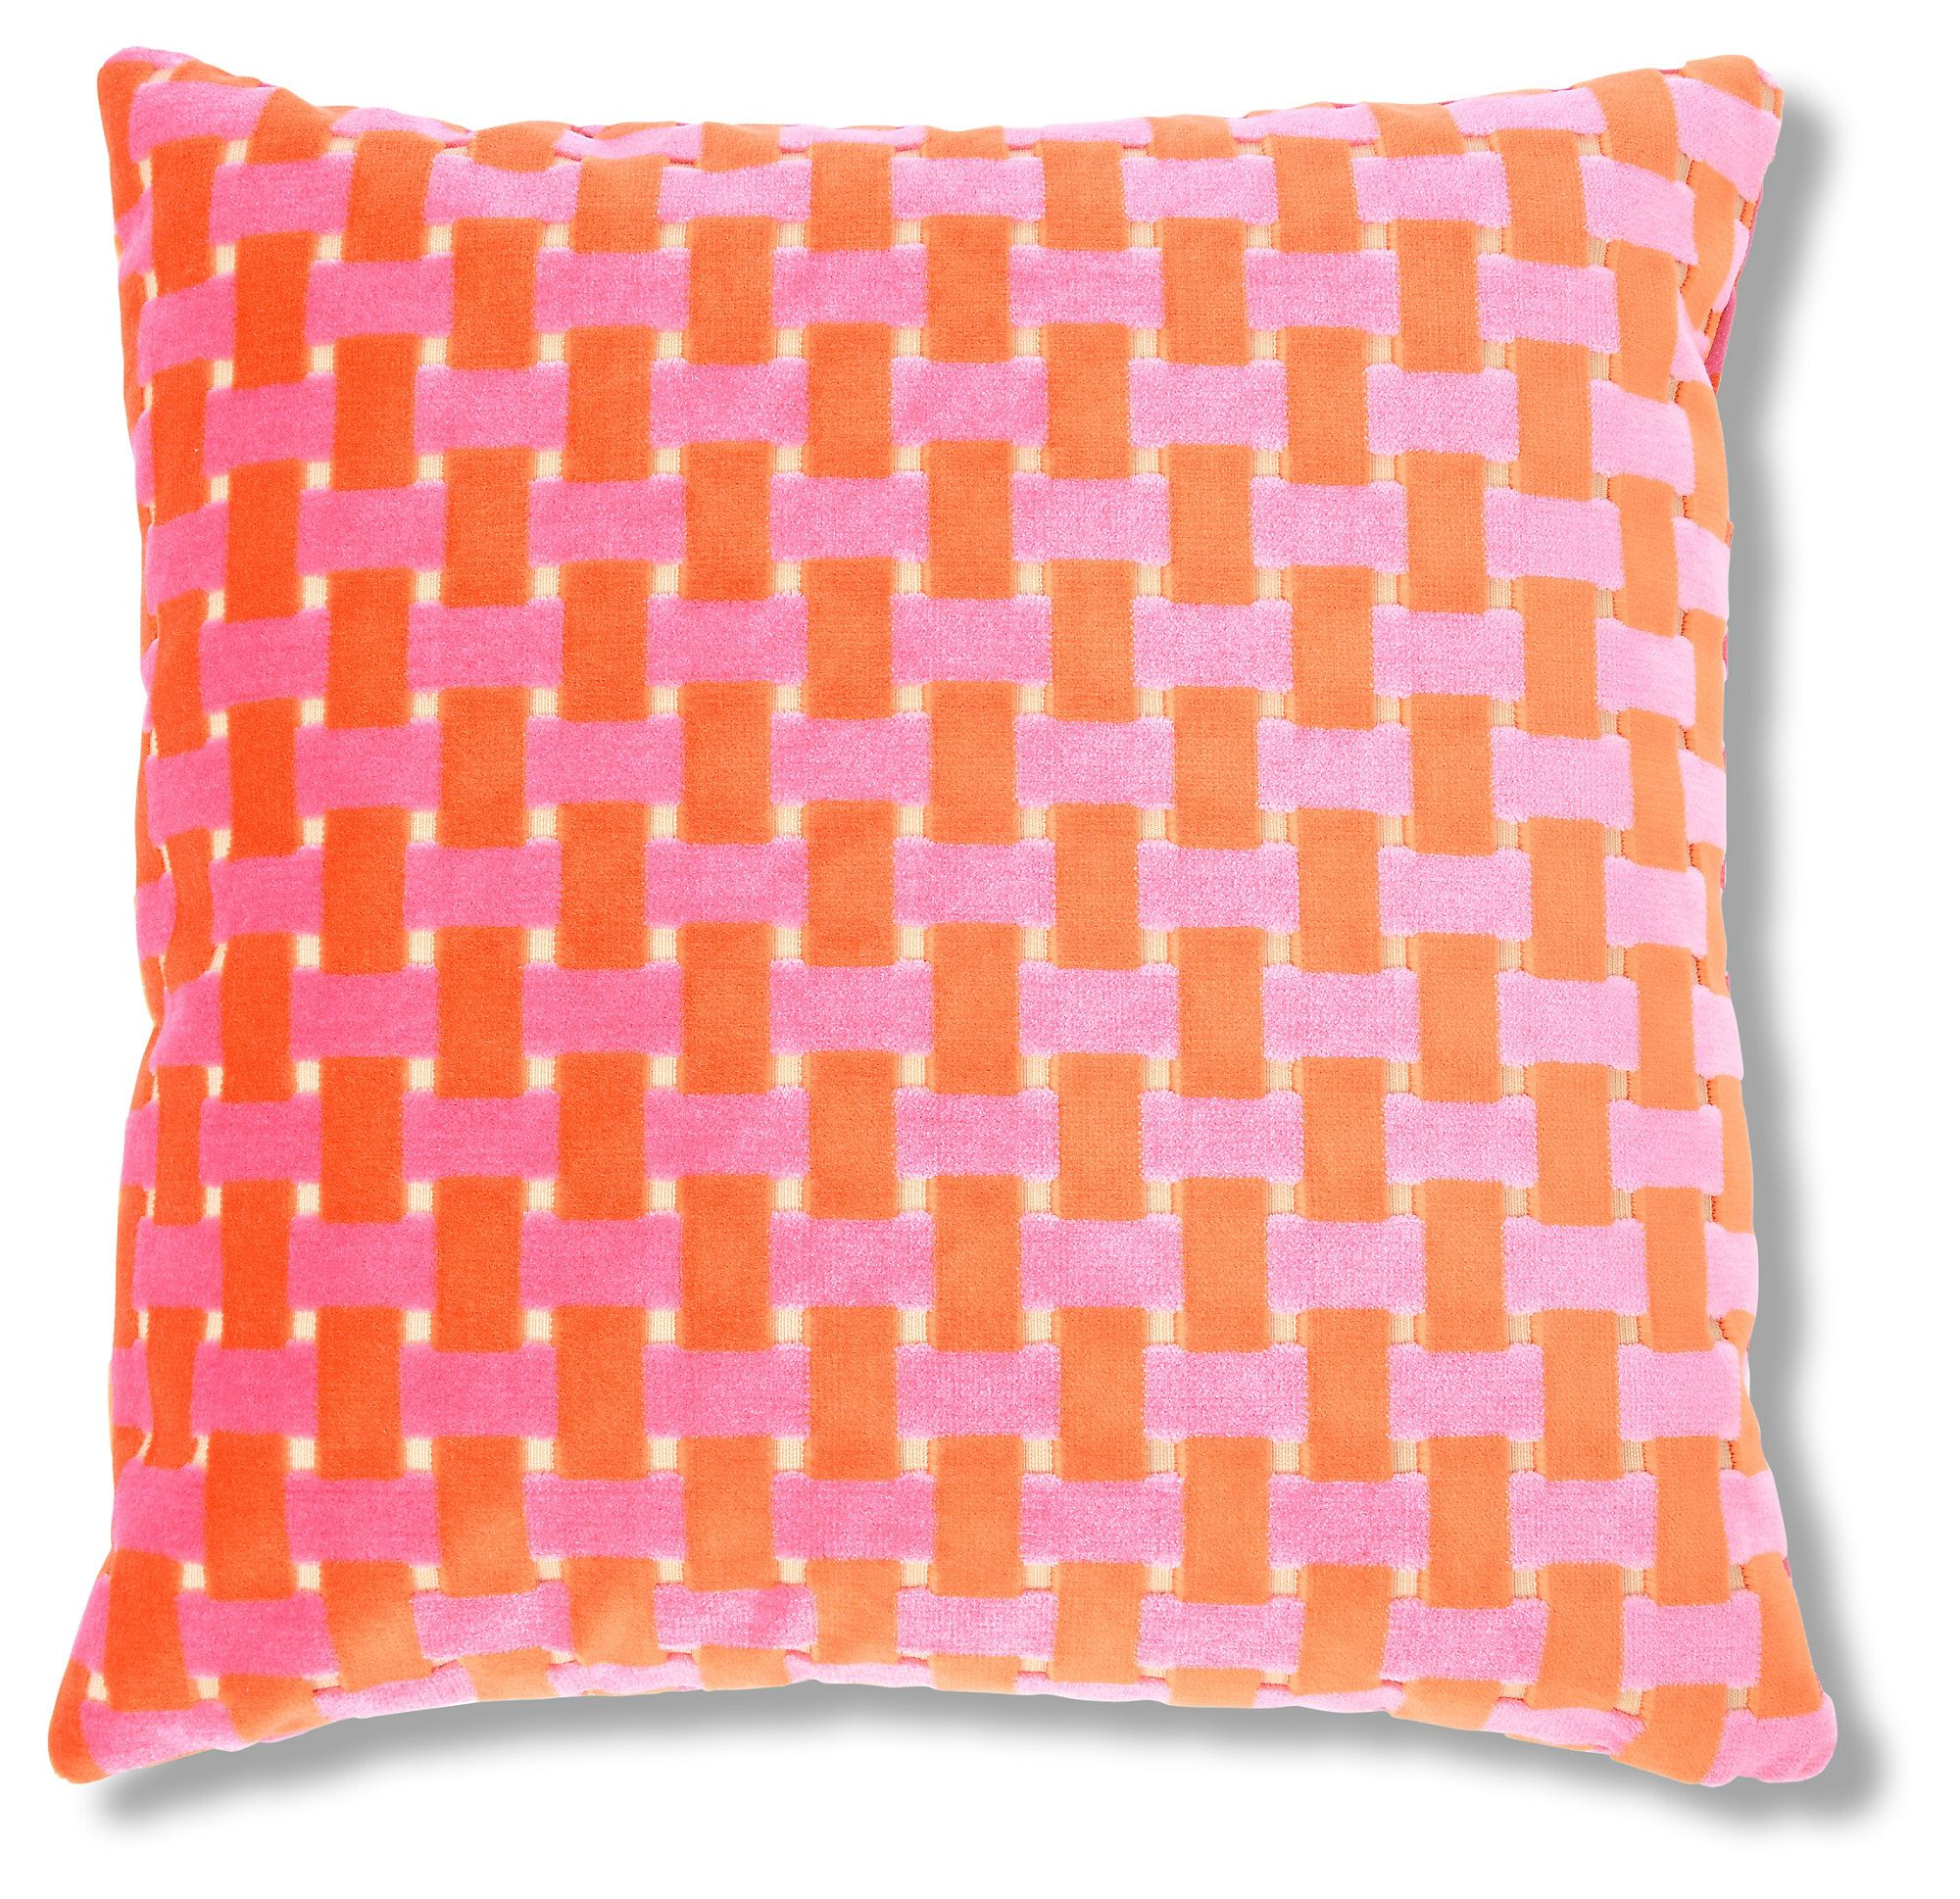 The bold basketweave design on this cutvelvet pillow is sure to